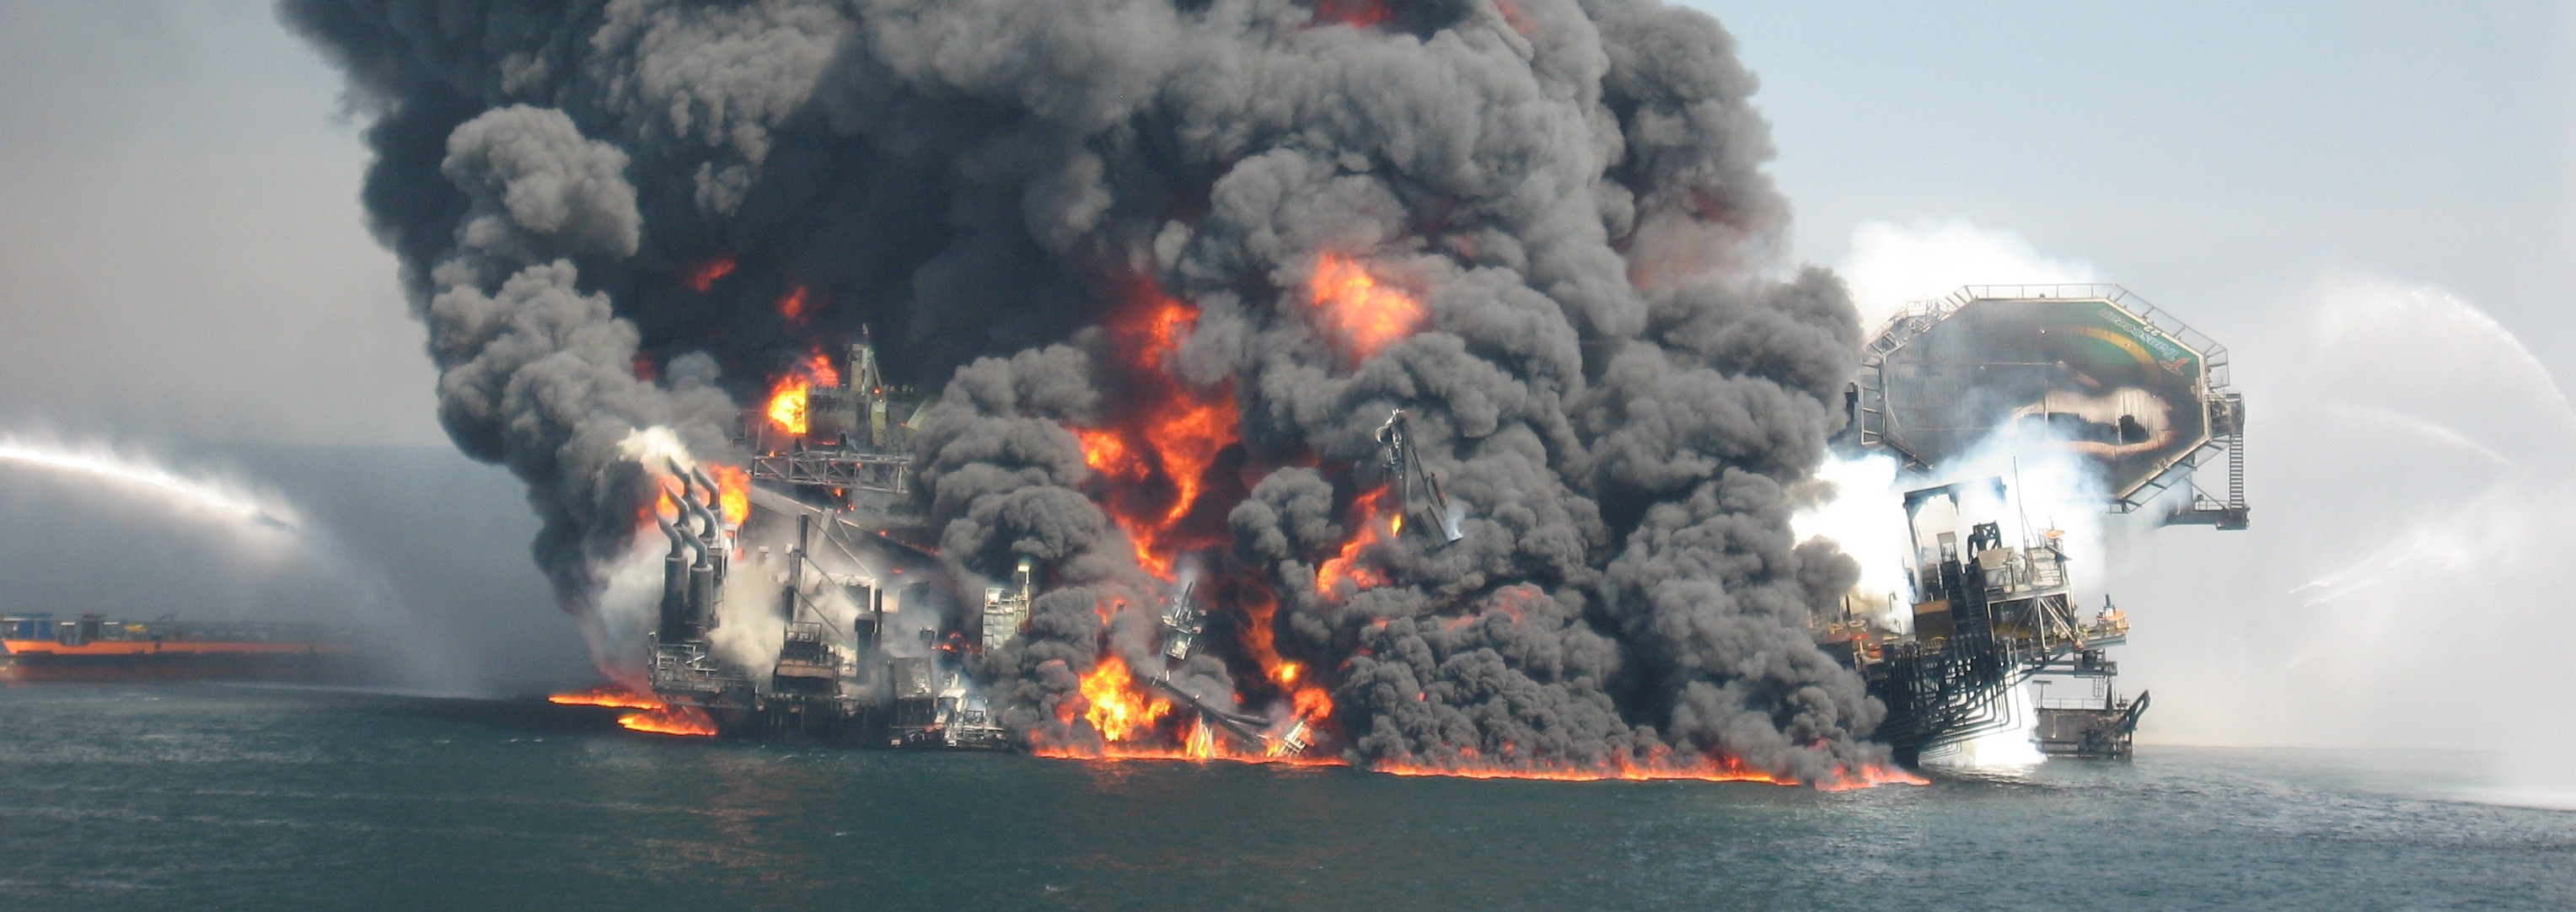 Image result for photos of Deepwater Horizon explosion,